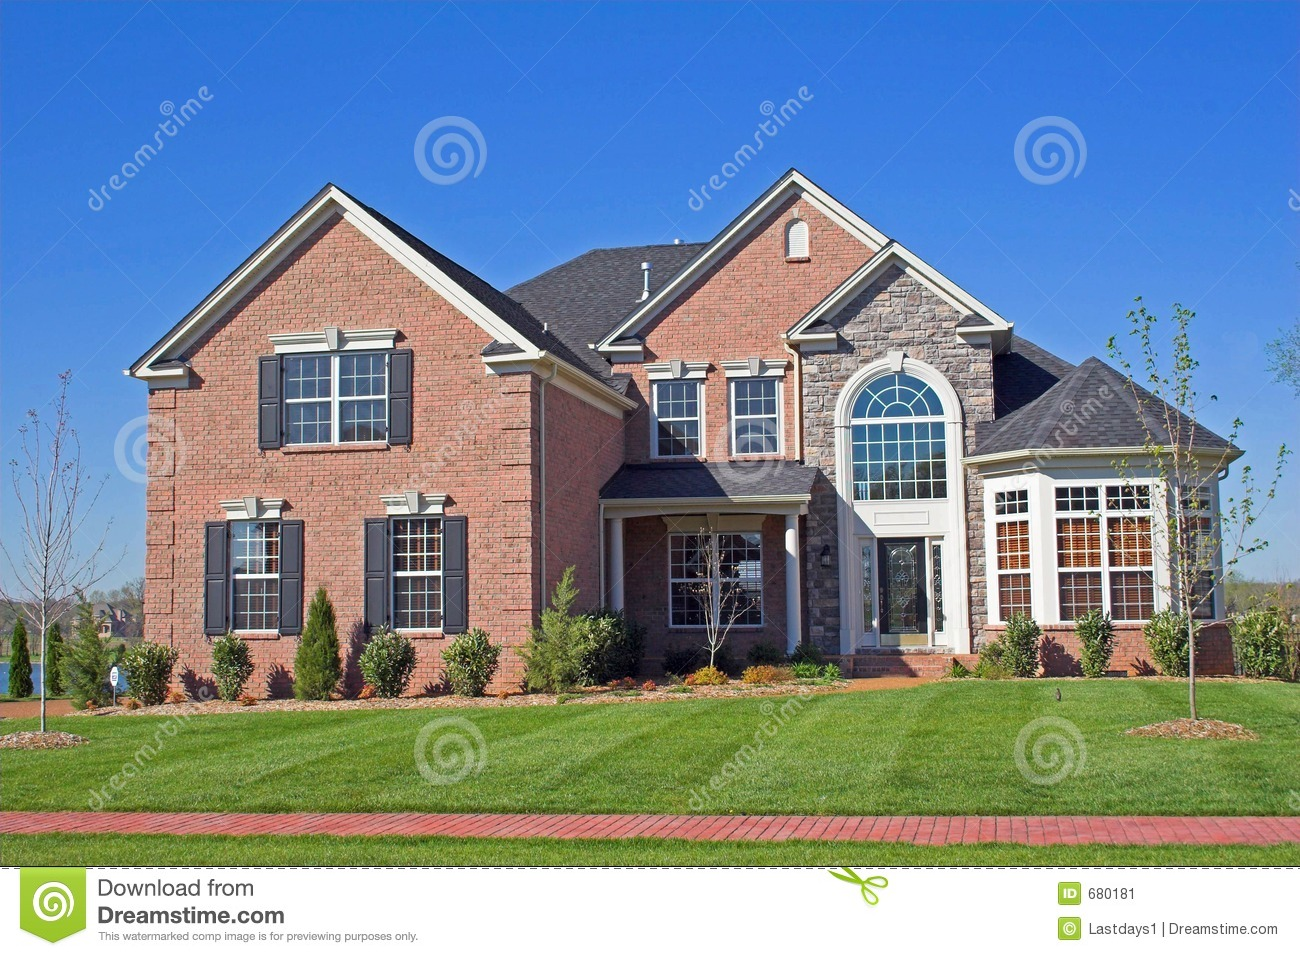 Beautiful homes series 1d stock image image 680181 for Home beautiful pictures